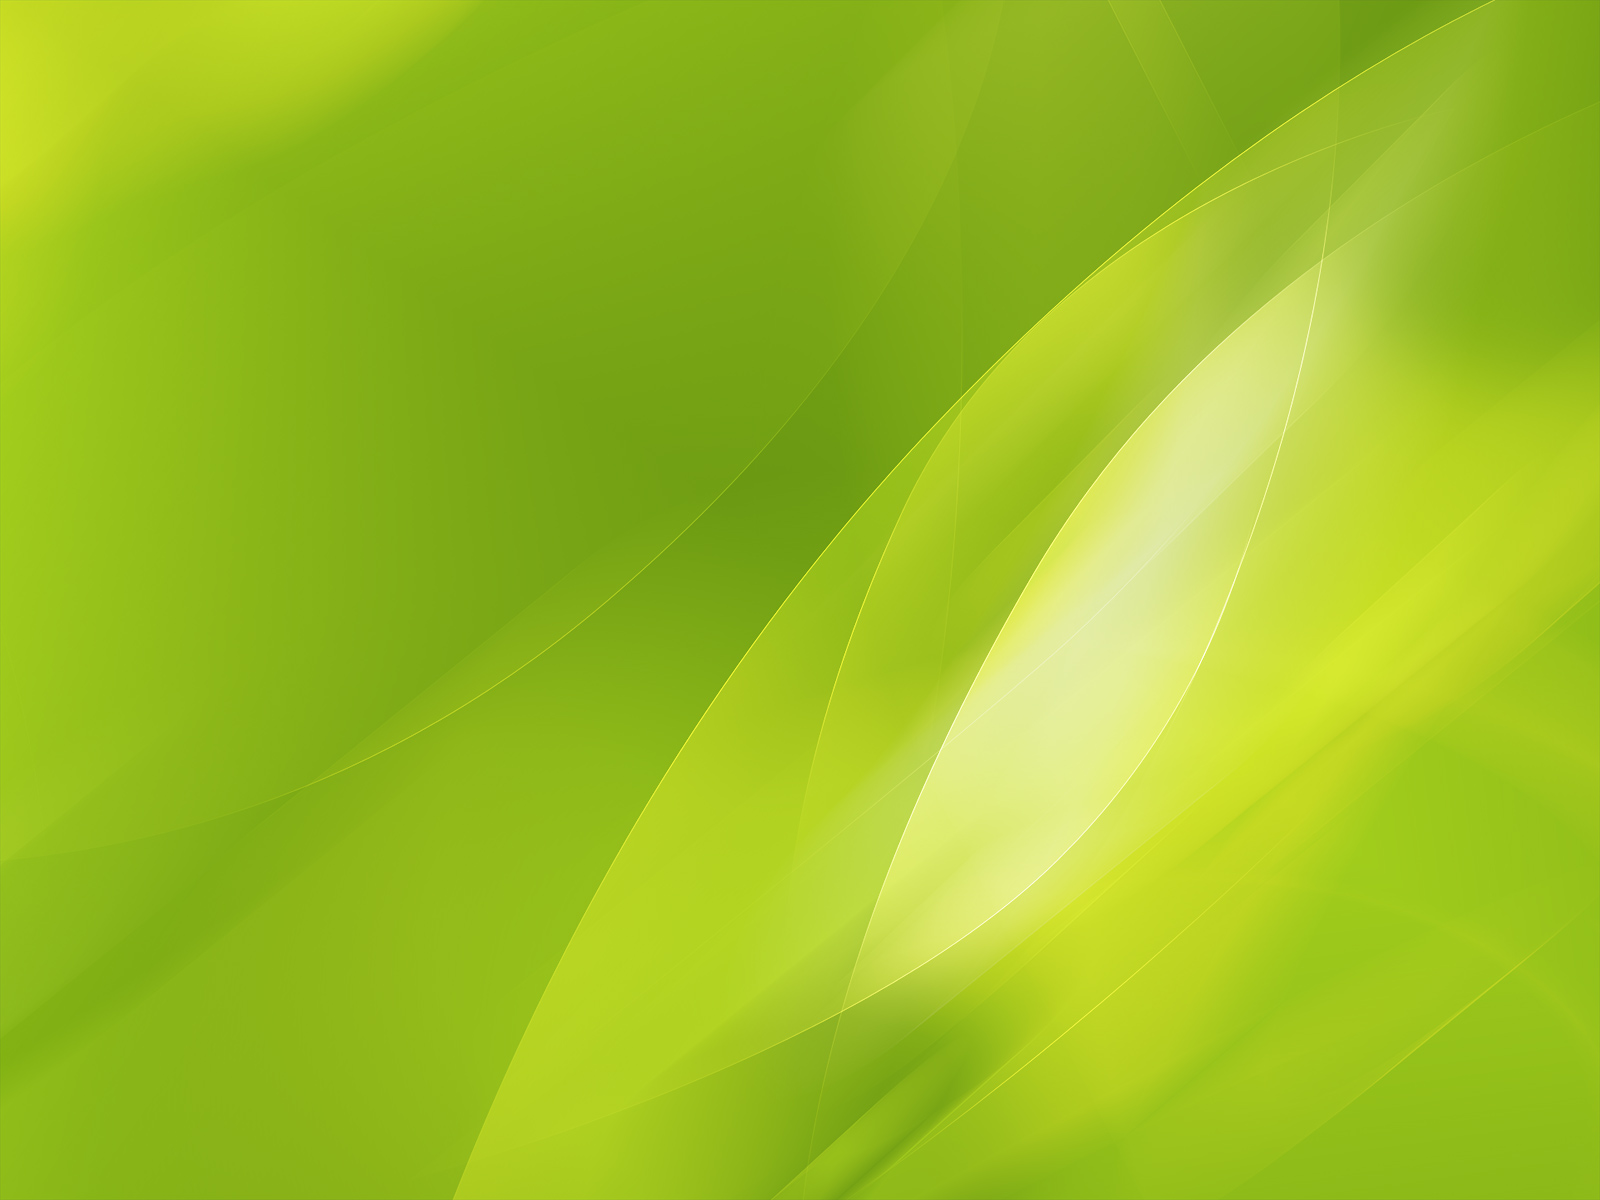 Free Download Lime Green Wallpaper Hd Android Desktop Abstract Iphone 5 Design 1600x1200 For Your Desktop Mobile Tablet Explore 76 Neon Green Wallpaper Neon Blue Wallpapers Neon Green Hd